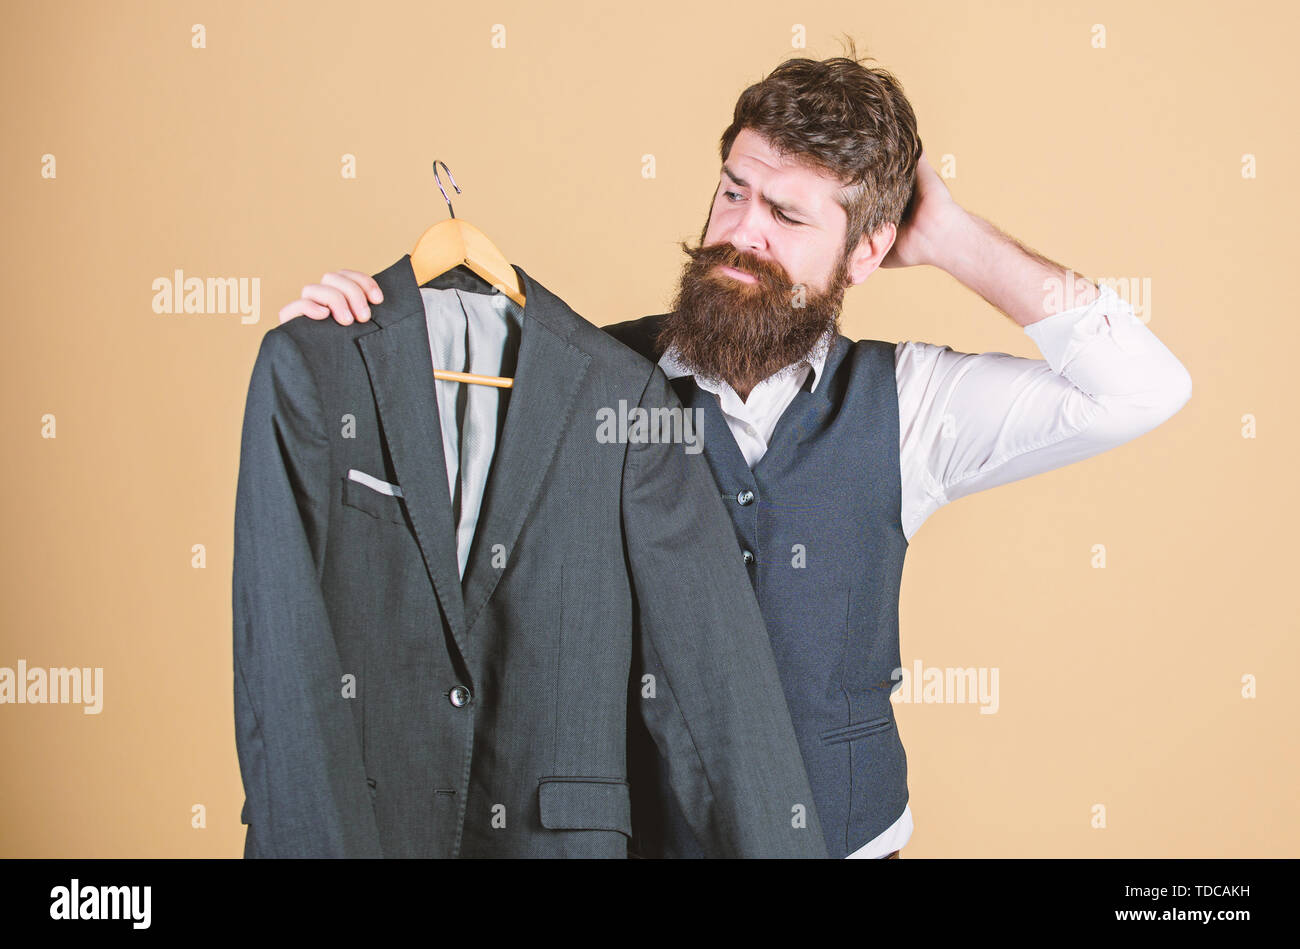 Thinking of what to wear to formal event. Hipster choosing formal suit jacket in wardrobe. Bearded man at formal wear boutique. Classy formal look of fashion model. - Stock Image